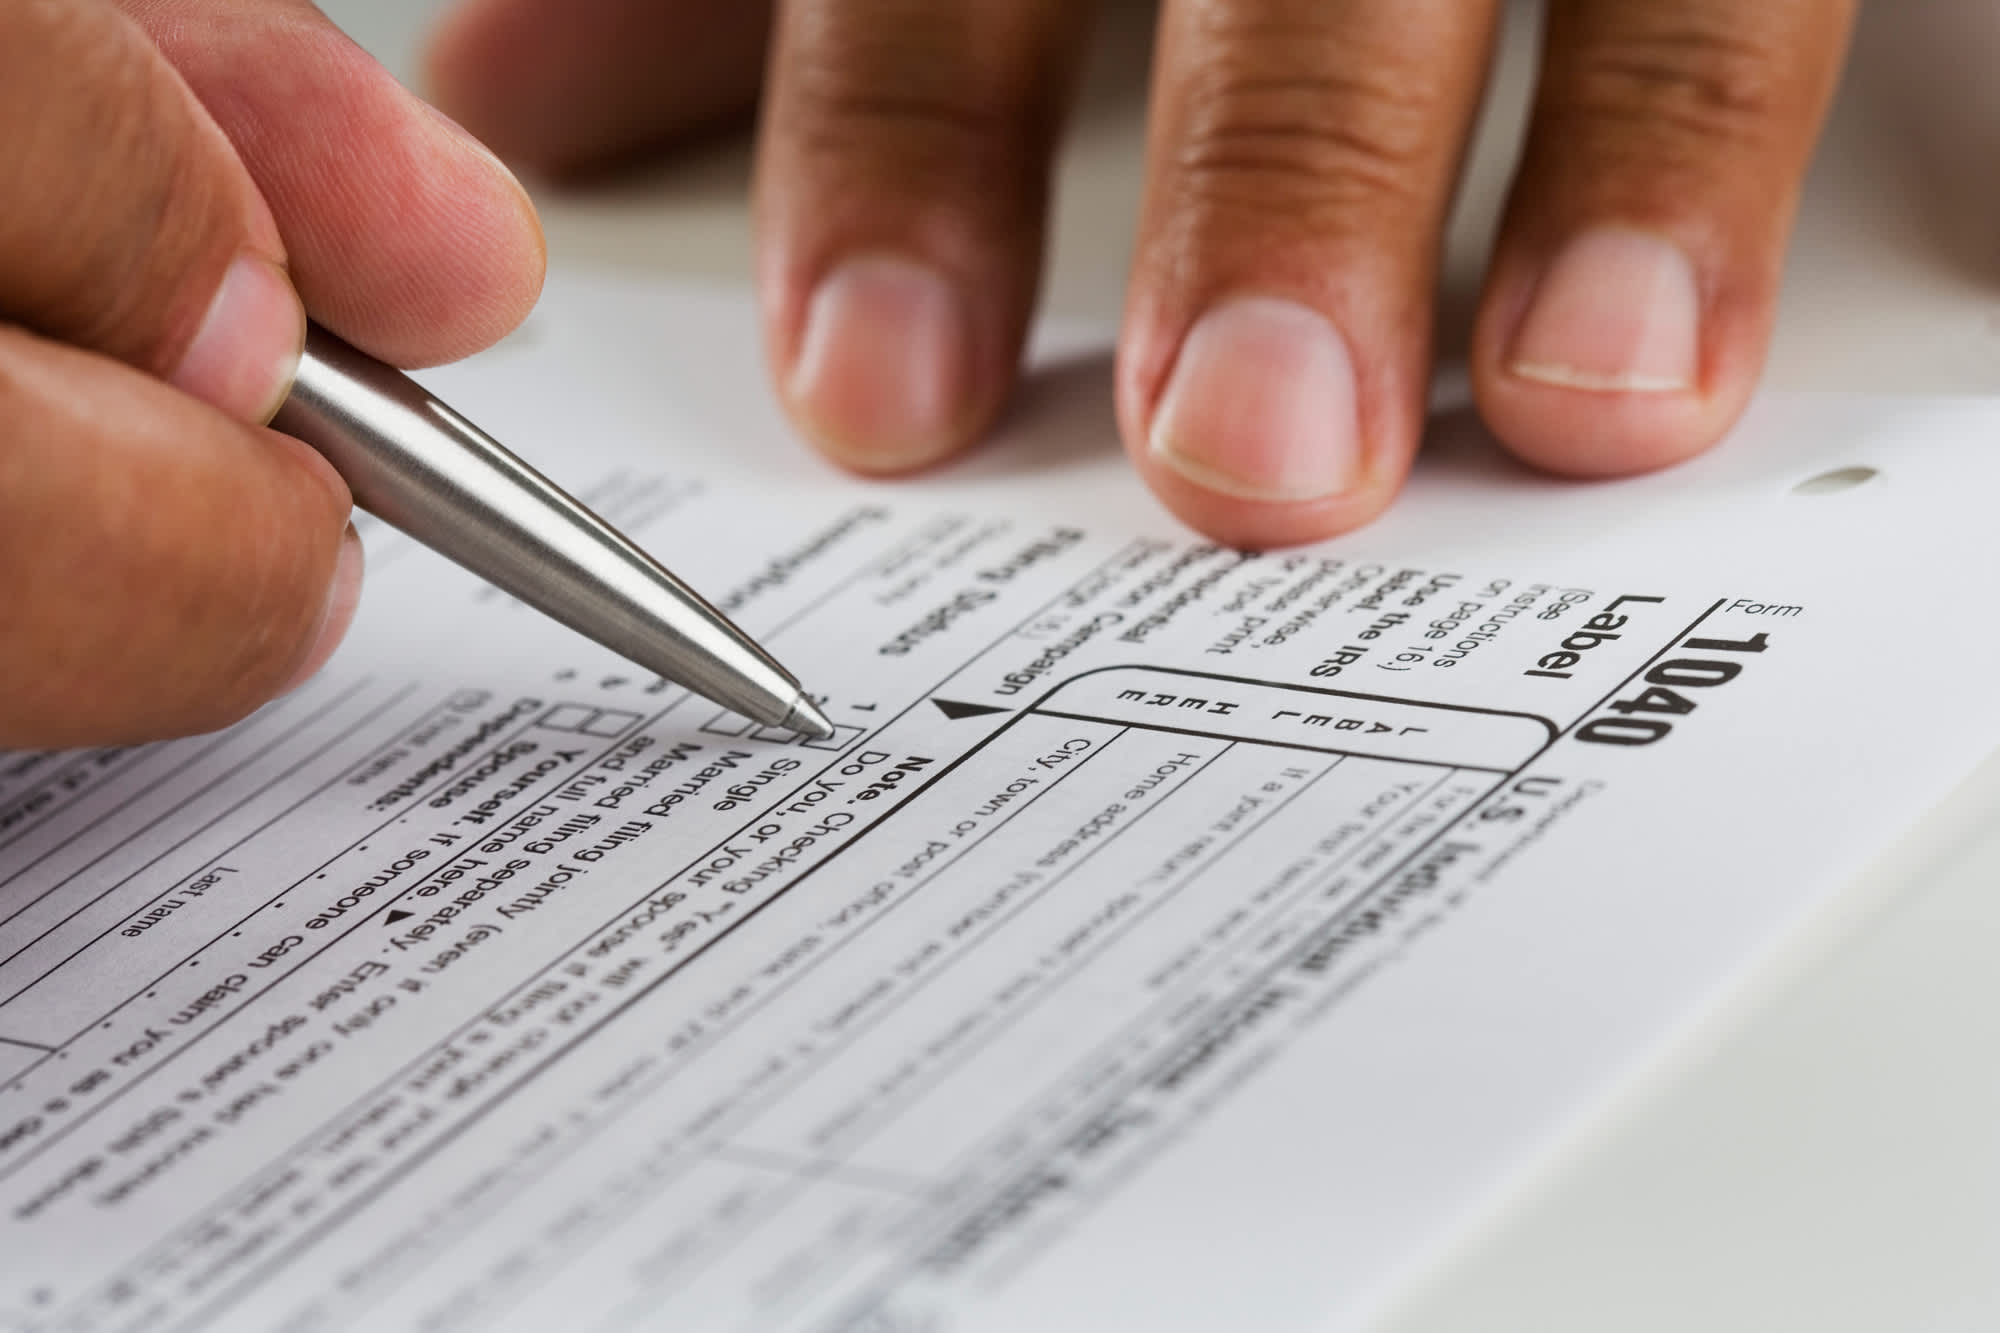 Amended return may be needed to get full refund on $10,200 unemployment tax break, IRS says